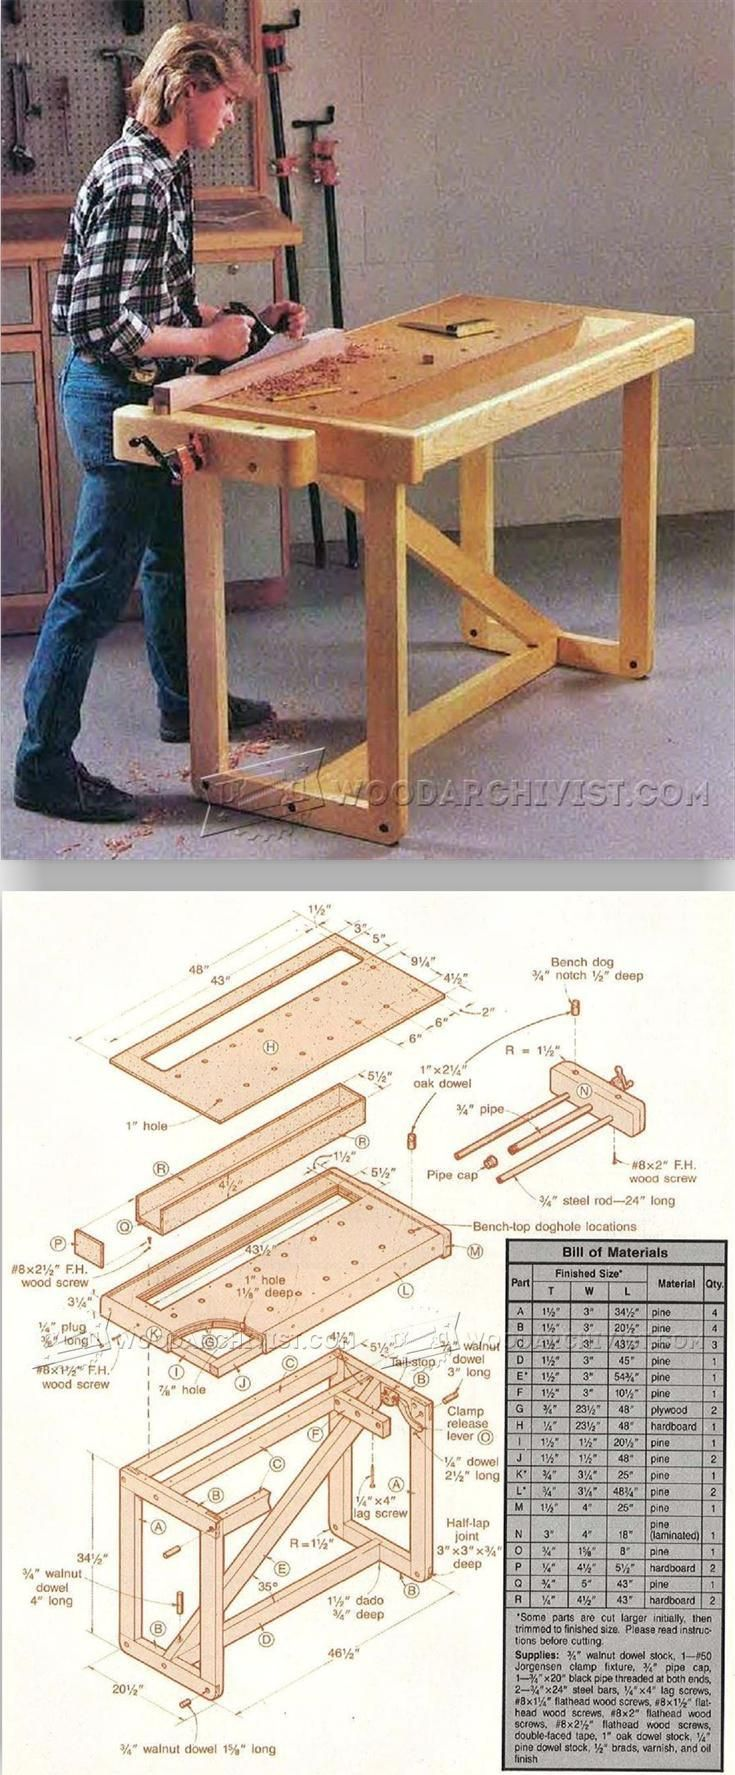 One Weekend Workbench Plans - Workshop Solutions Plans, Tips and Tricks | WoodArchivist.com